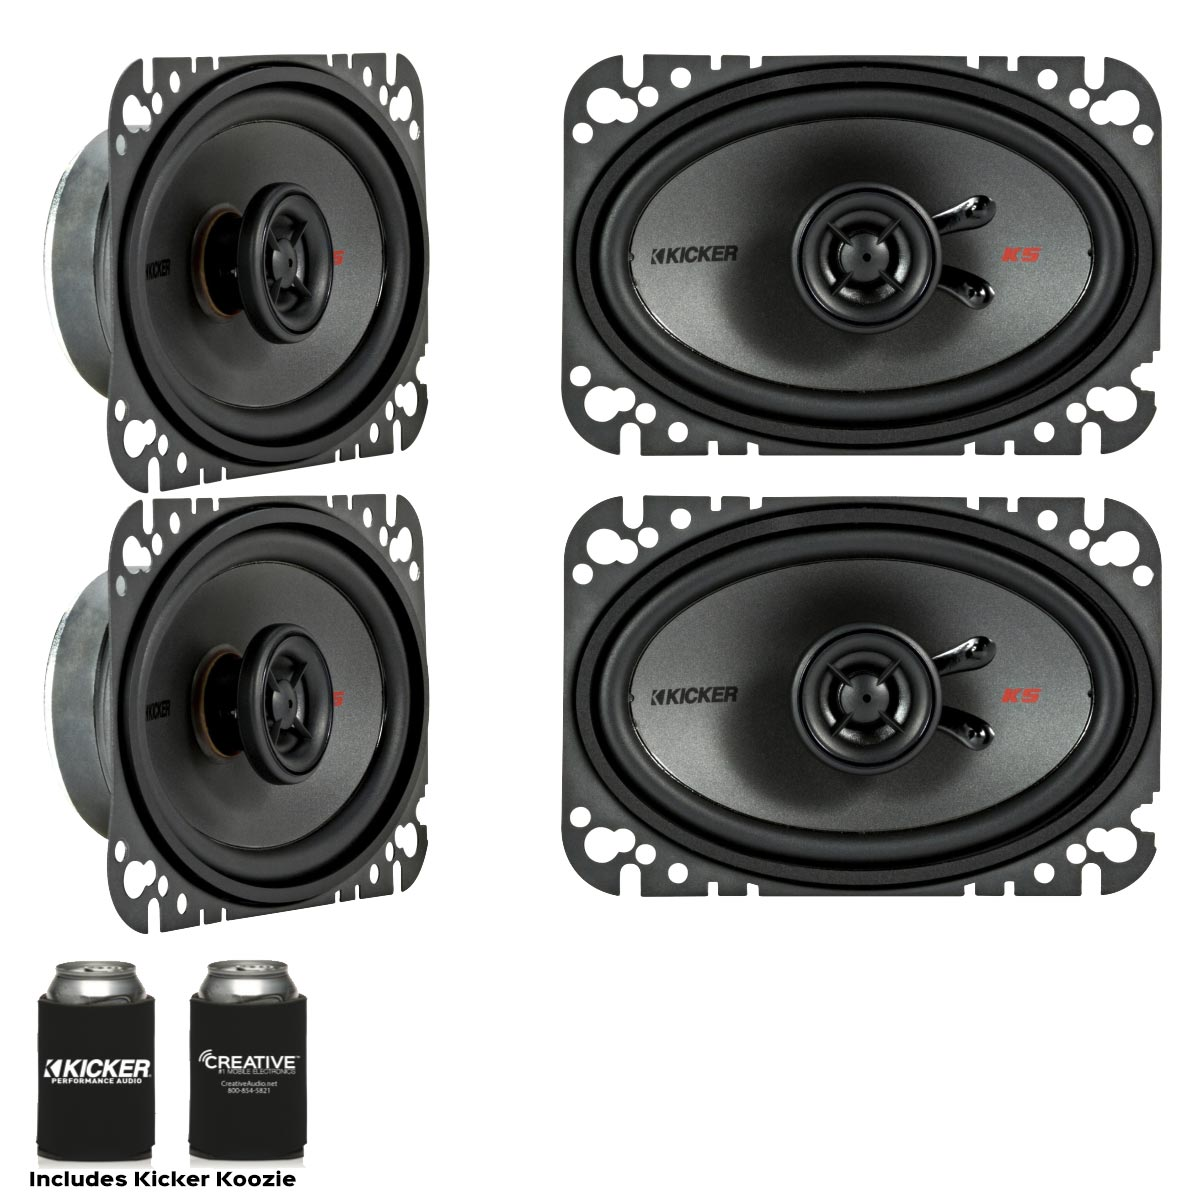 Kicker Speaker Bundle - Two pairs of Kicker 4x6 Inch KS-Series Speakers 44KSC4604